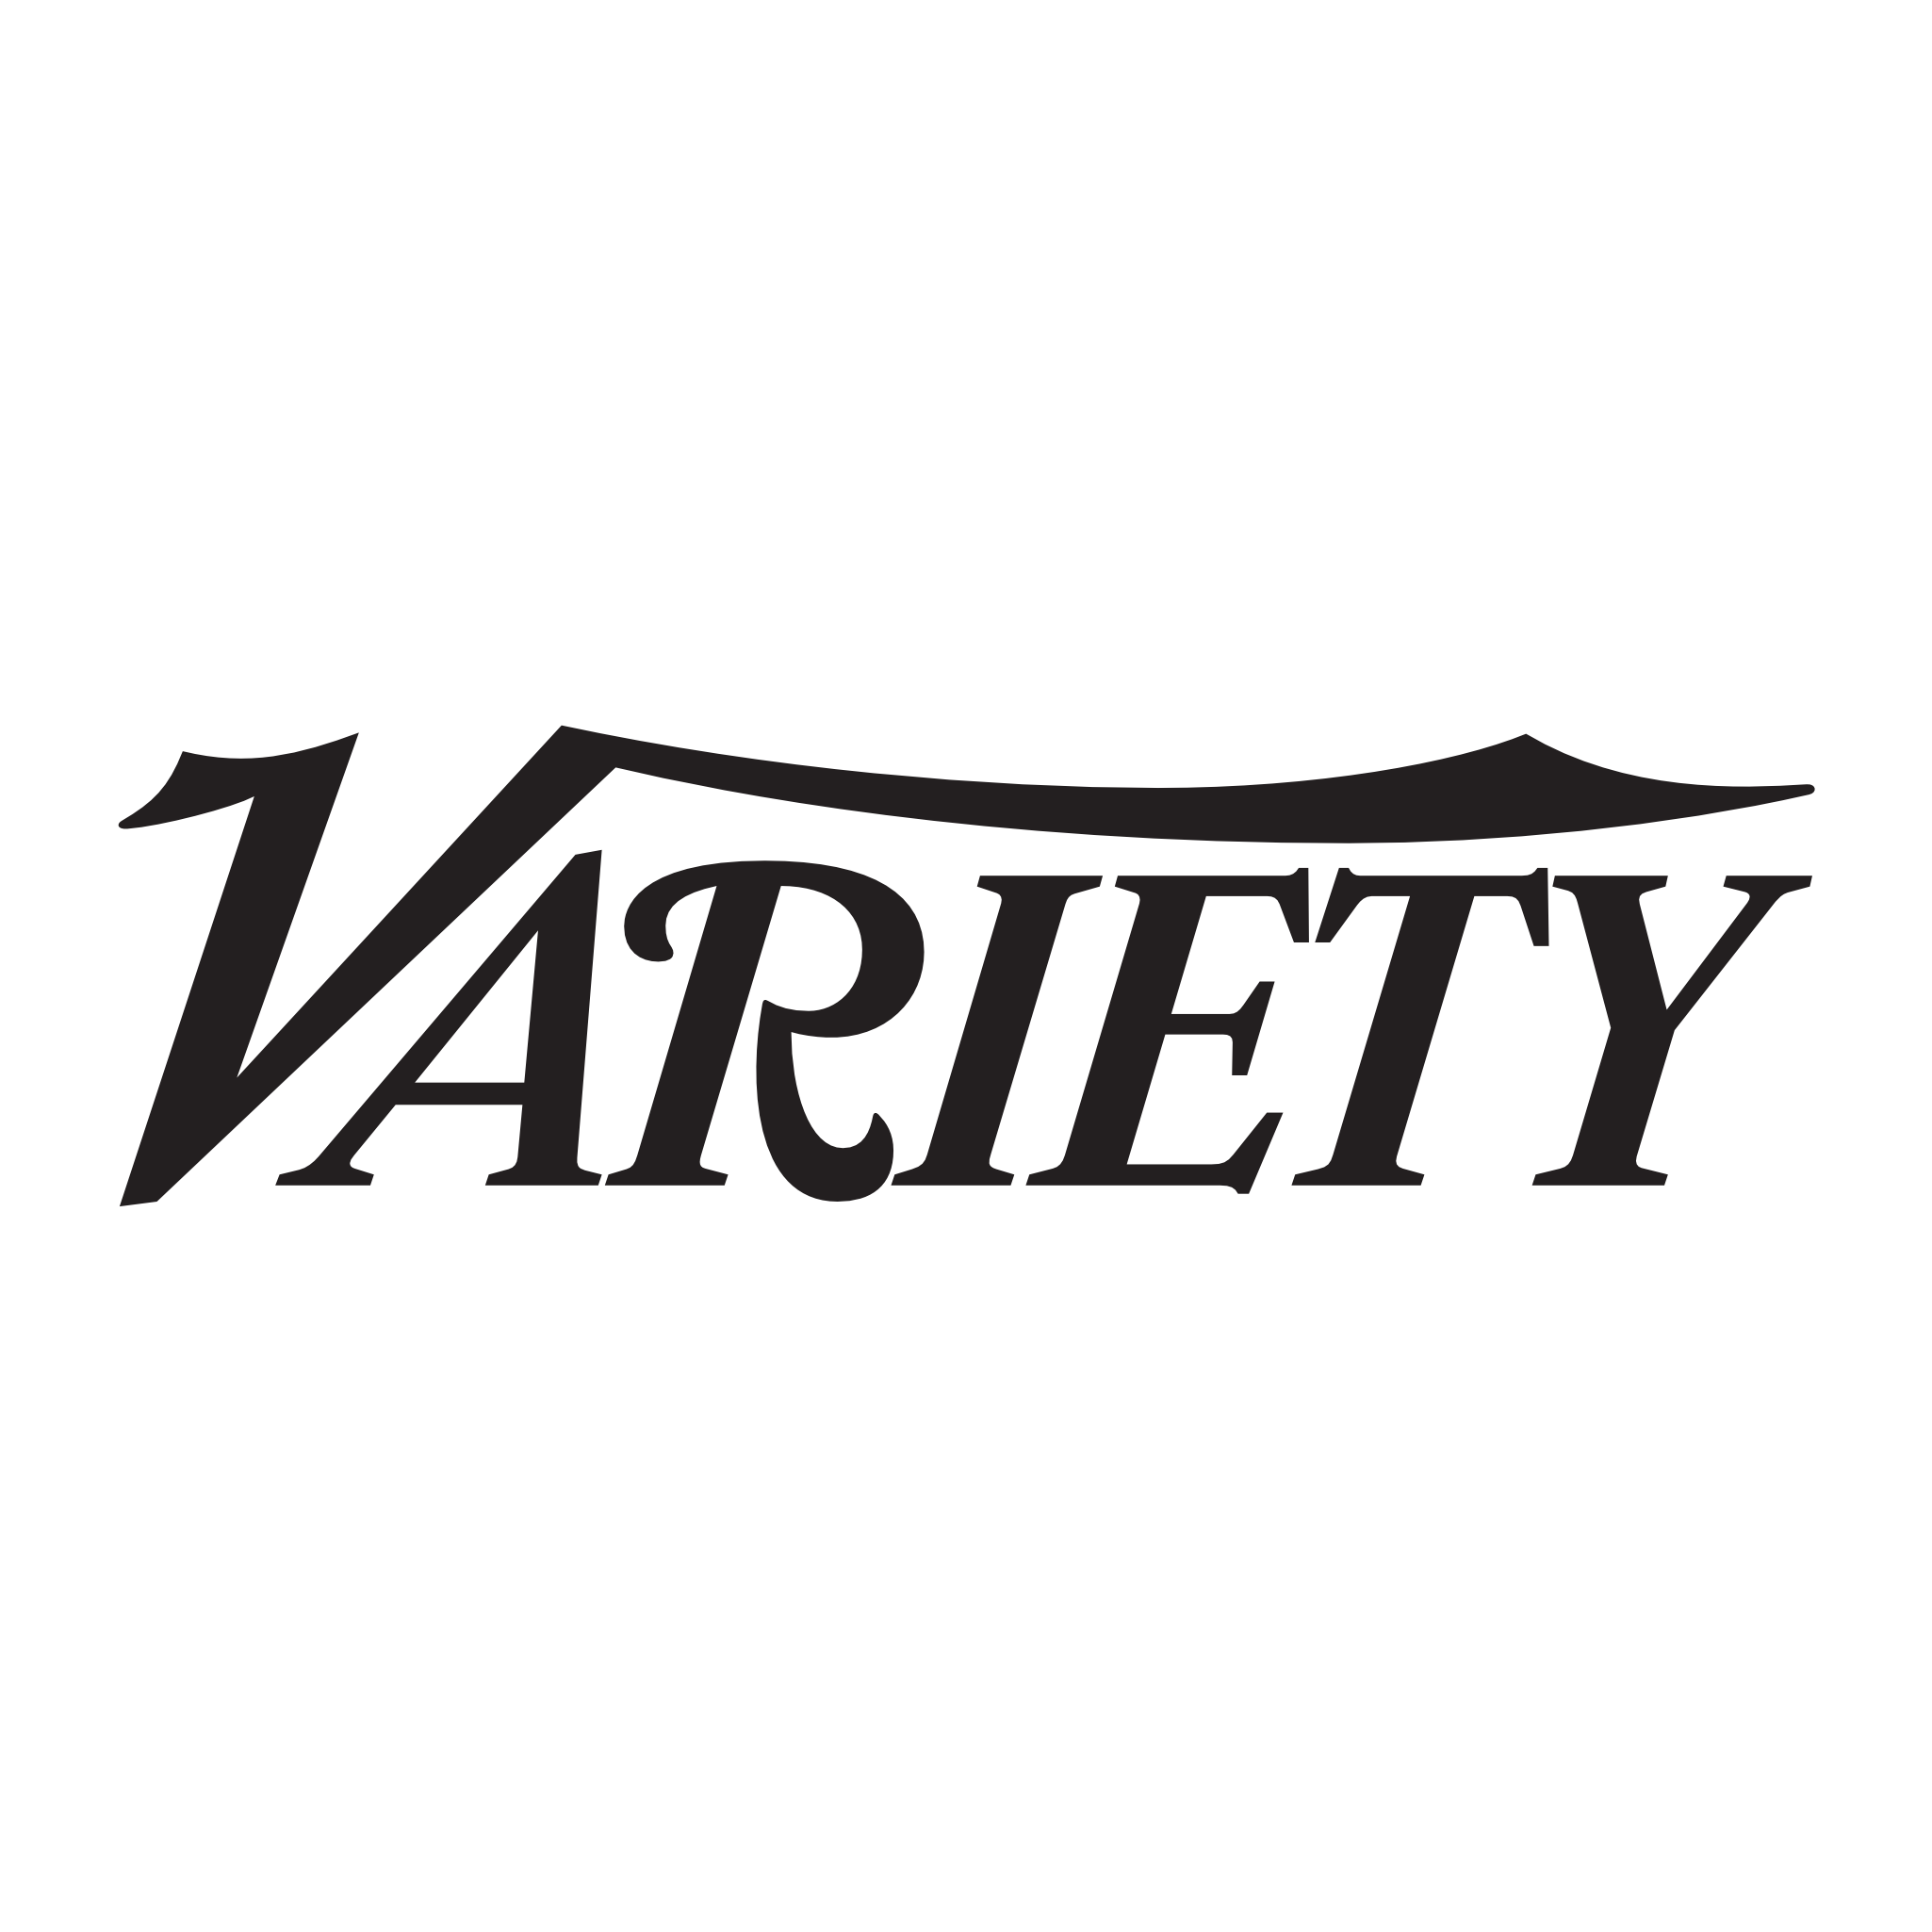 variety-square.png